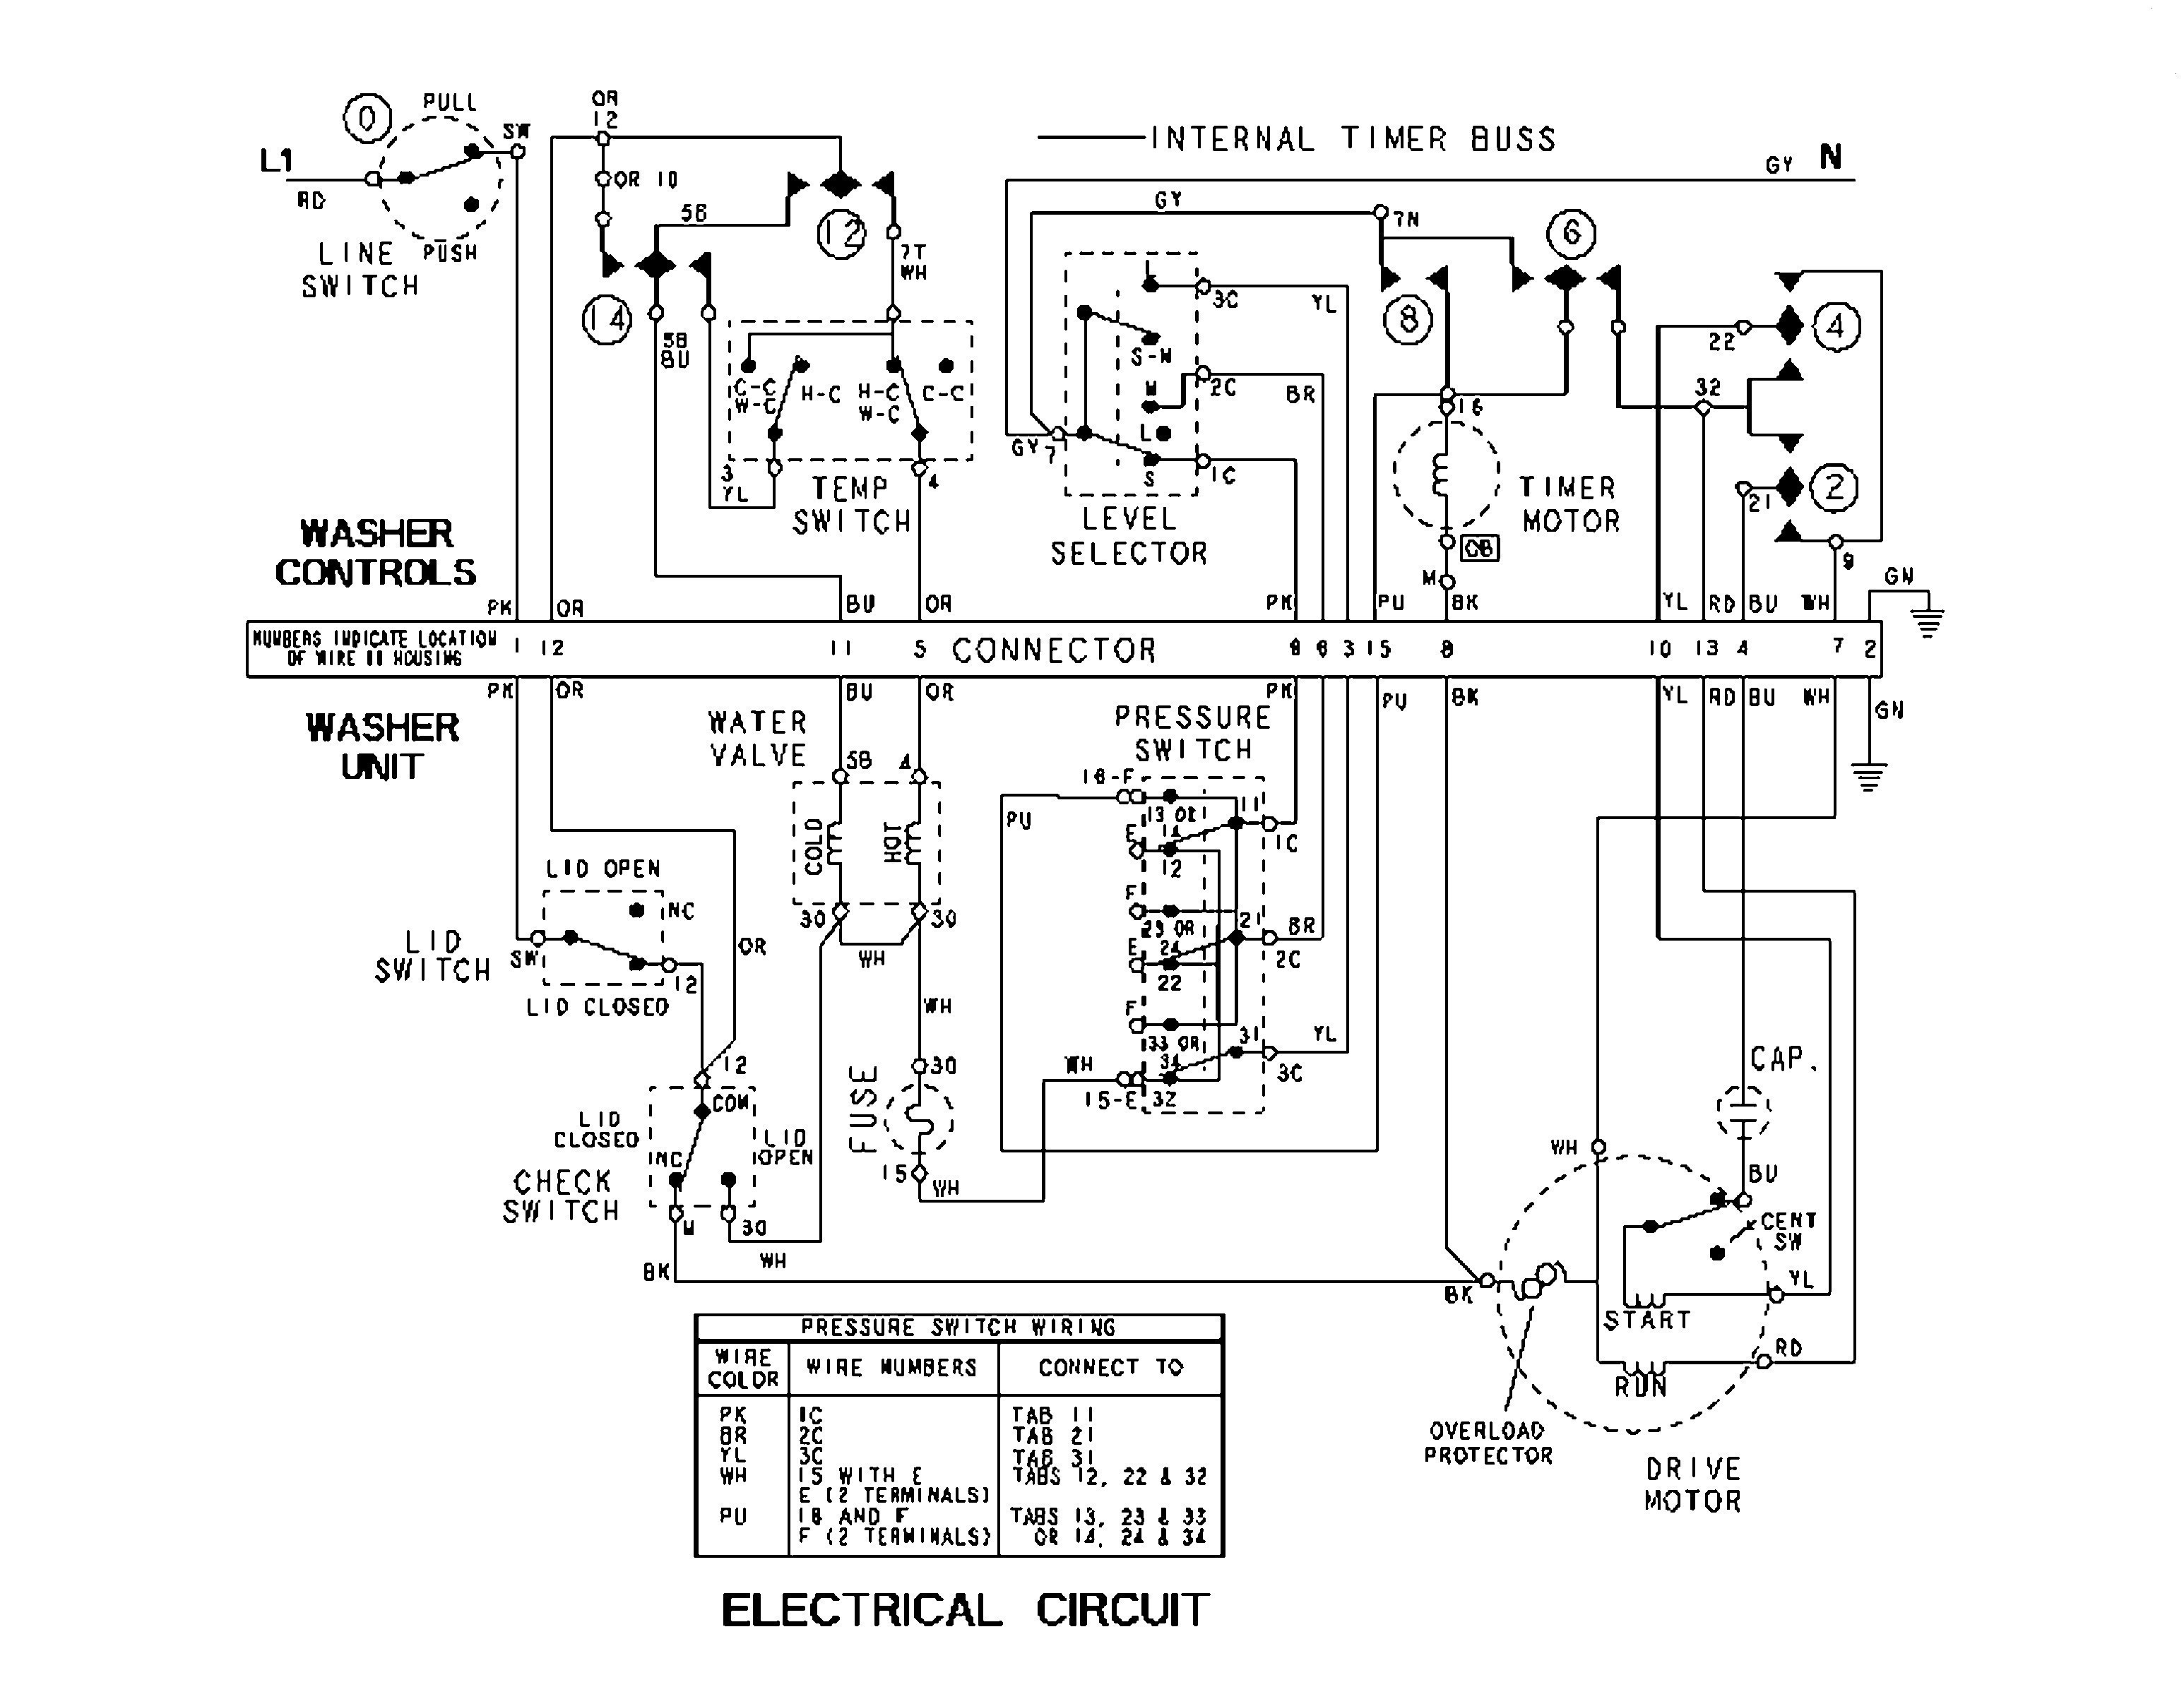 General Electric Motor Wiring Diagram 2 My Wiring Diagram